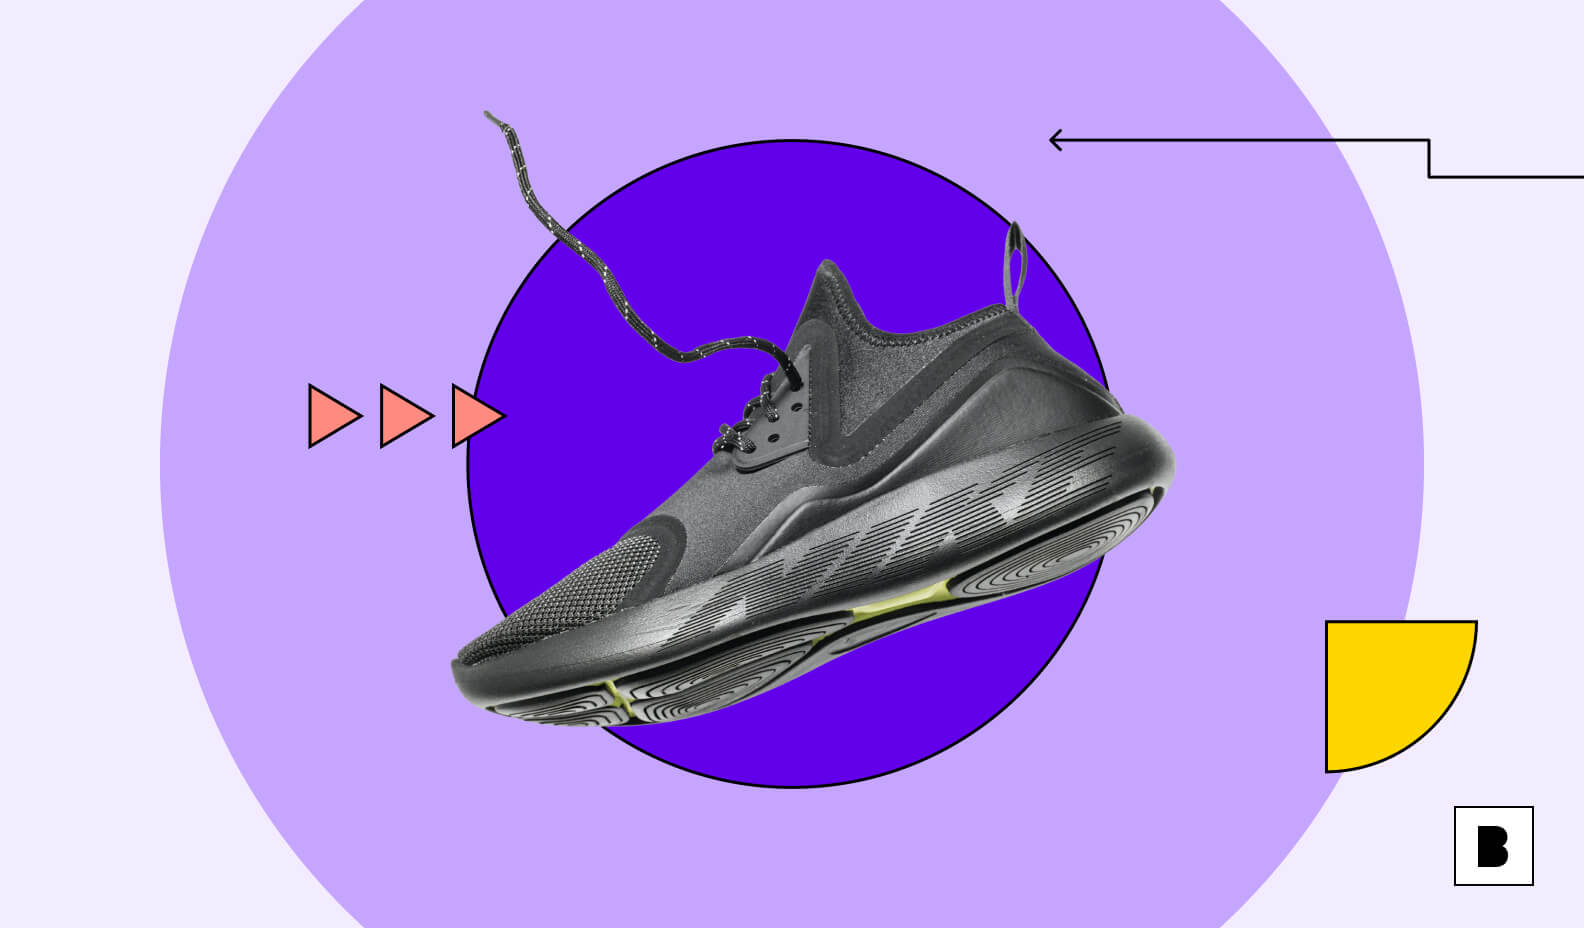 Shoe as a product for business